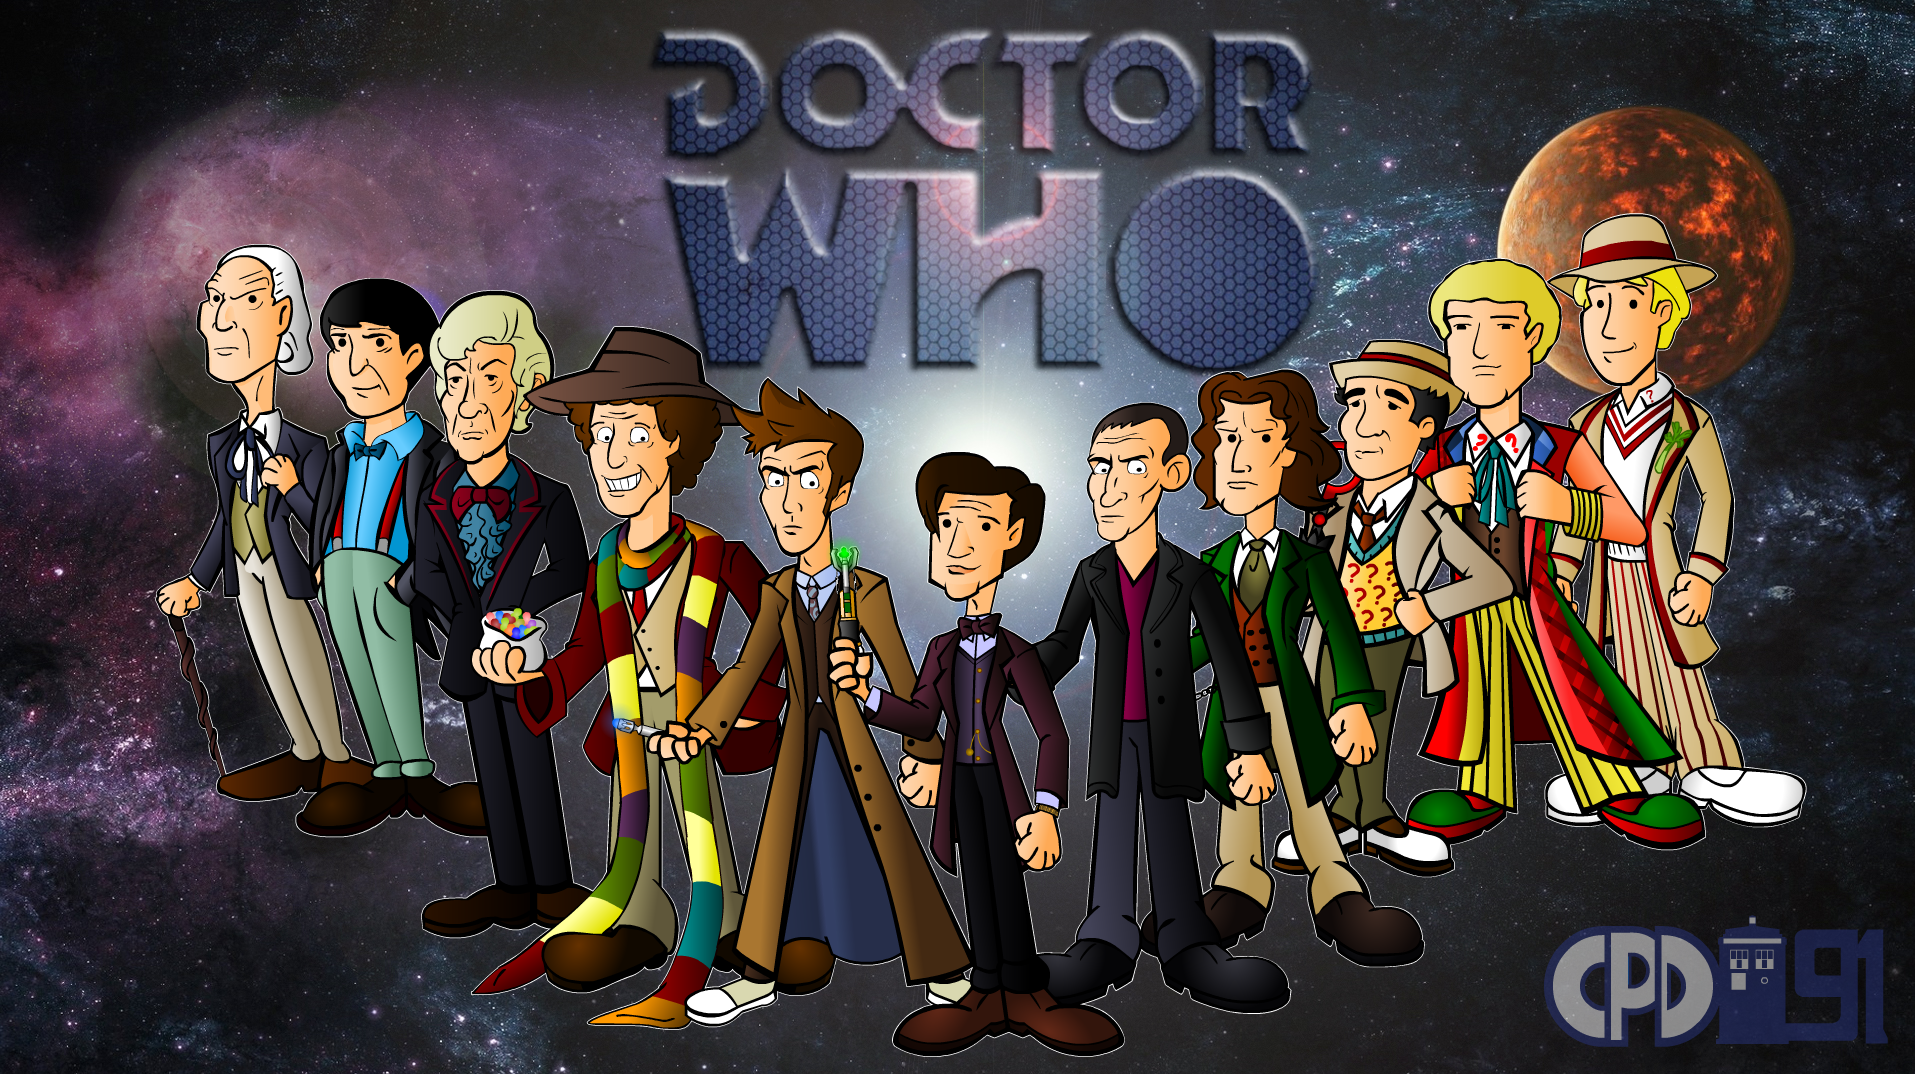 The 11 Doctors By Cpd 91 On Deviantart